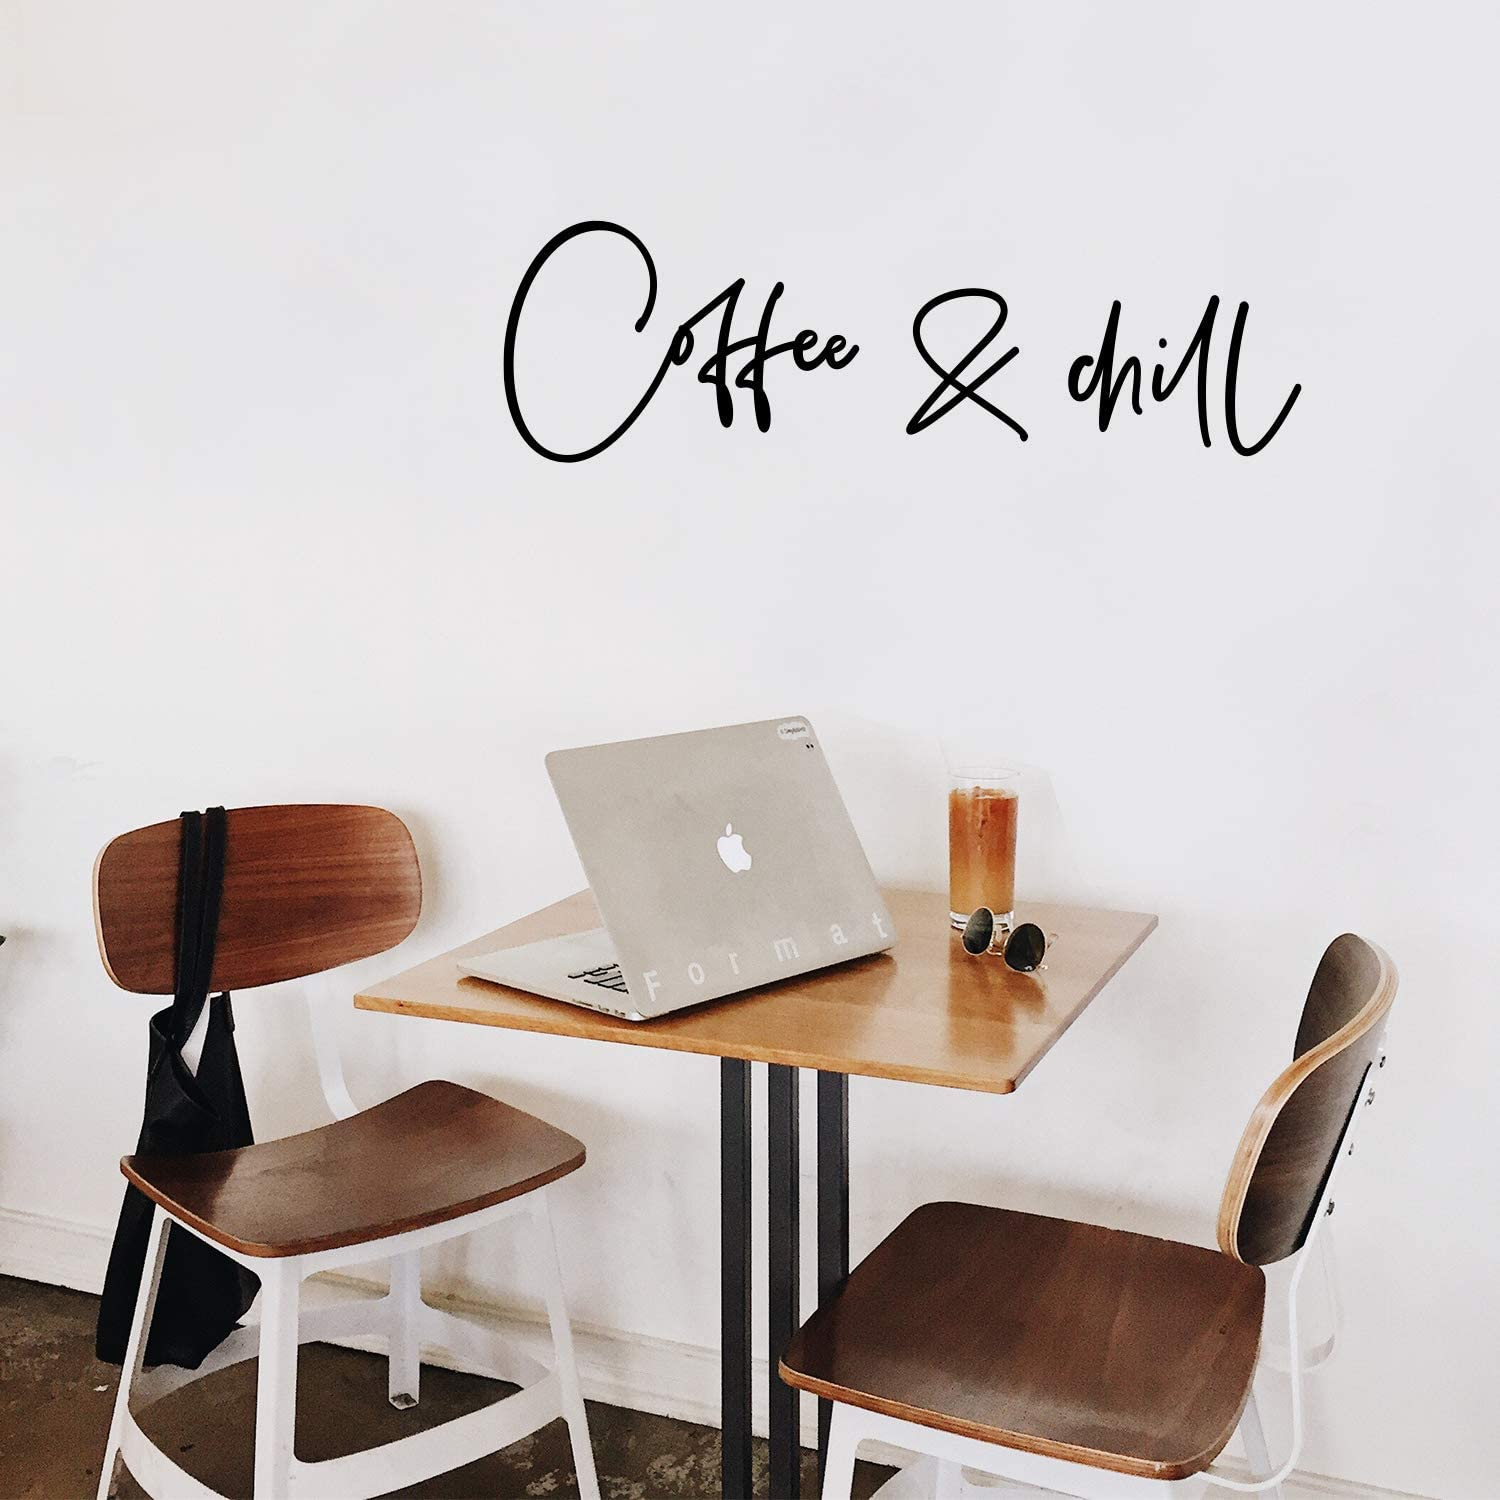 """Vinyl Wall Art Decal - Coffee & Chill - 10"""" x 35"""" - Modern Inspirational Cafe Quote Sticker for Coffee Lovers Home Office kitchenette Restaurant Living Room Store Coffee Shop Decor (Black)"""